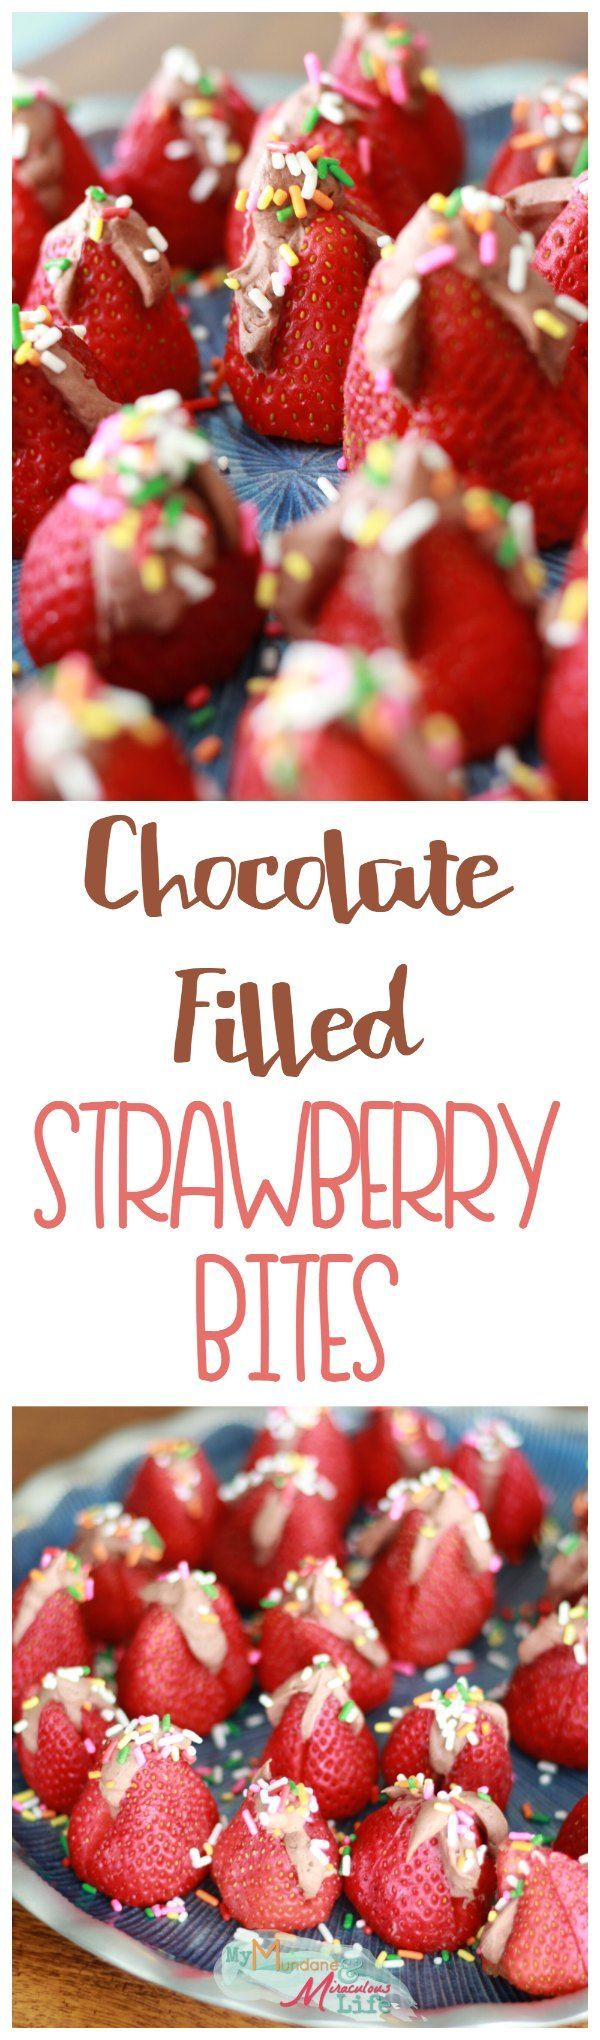 The simplest, most delicious chocolate strawberry dessert. Even your toddler can help you make this quick dessert perfect for parties! It's no bake so it won't heat your house either.